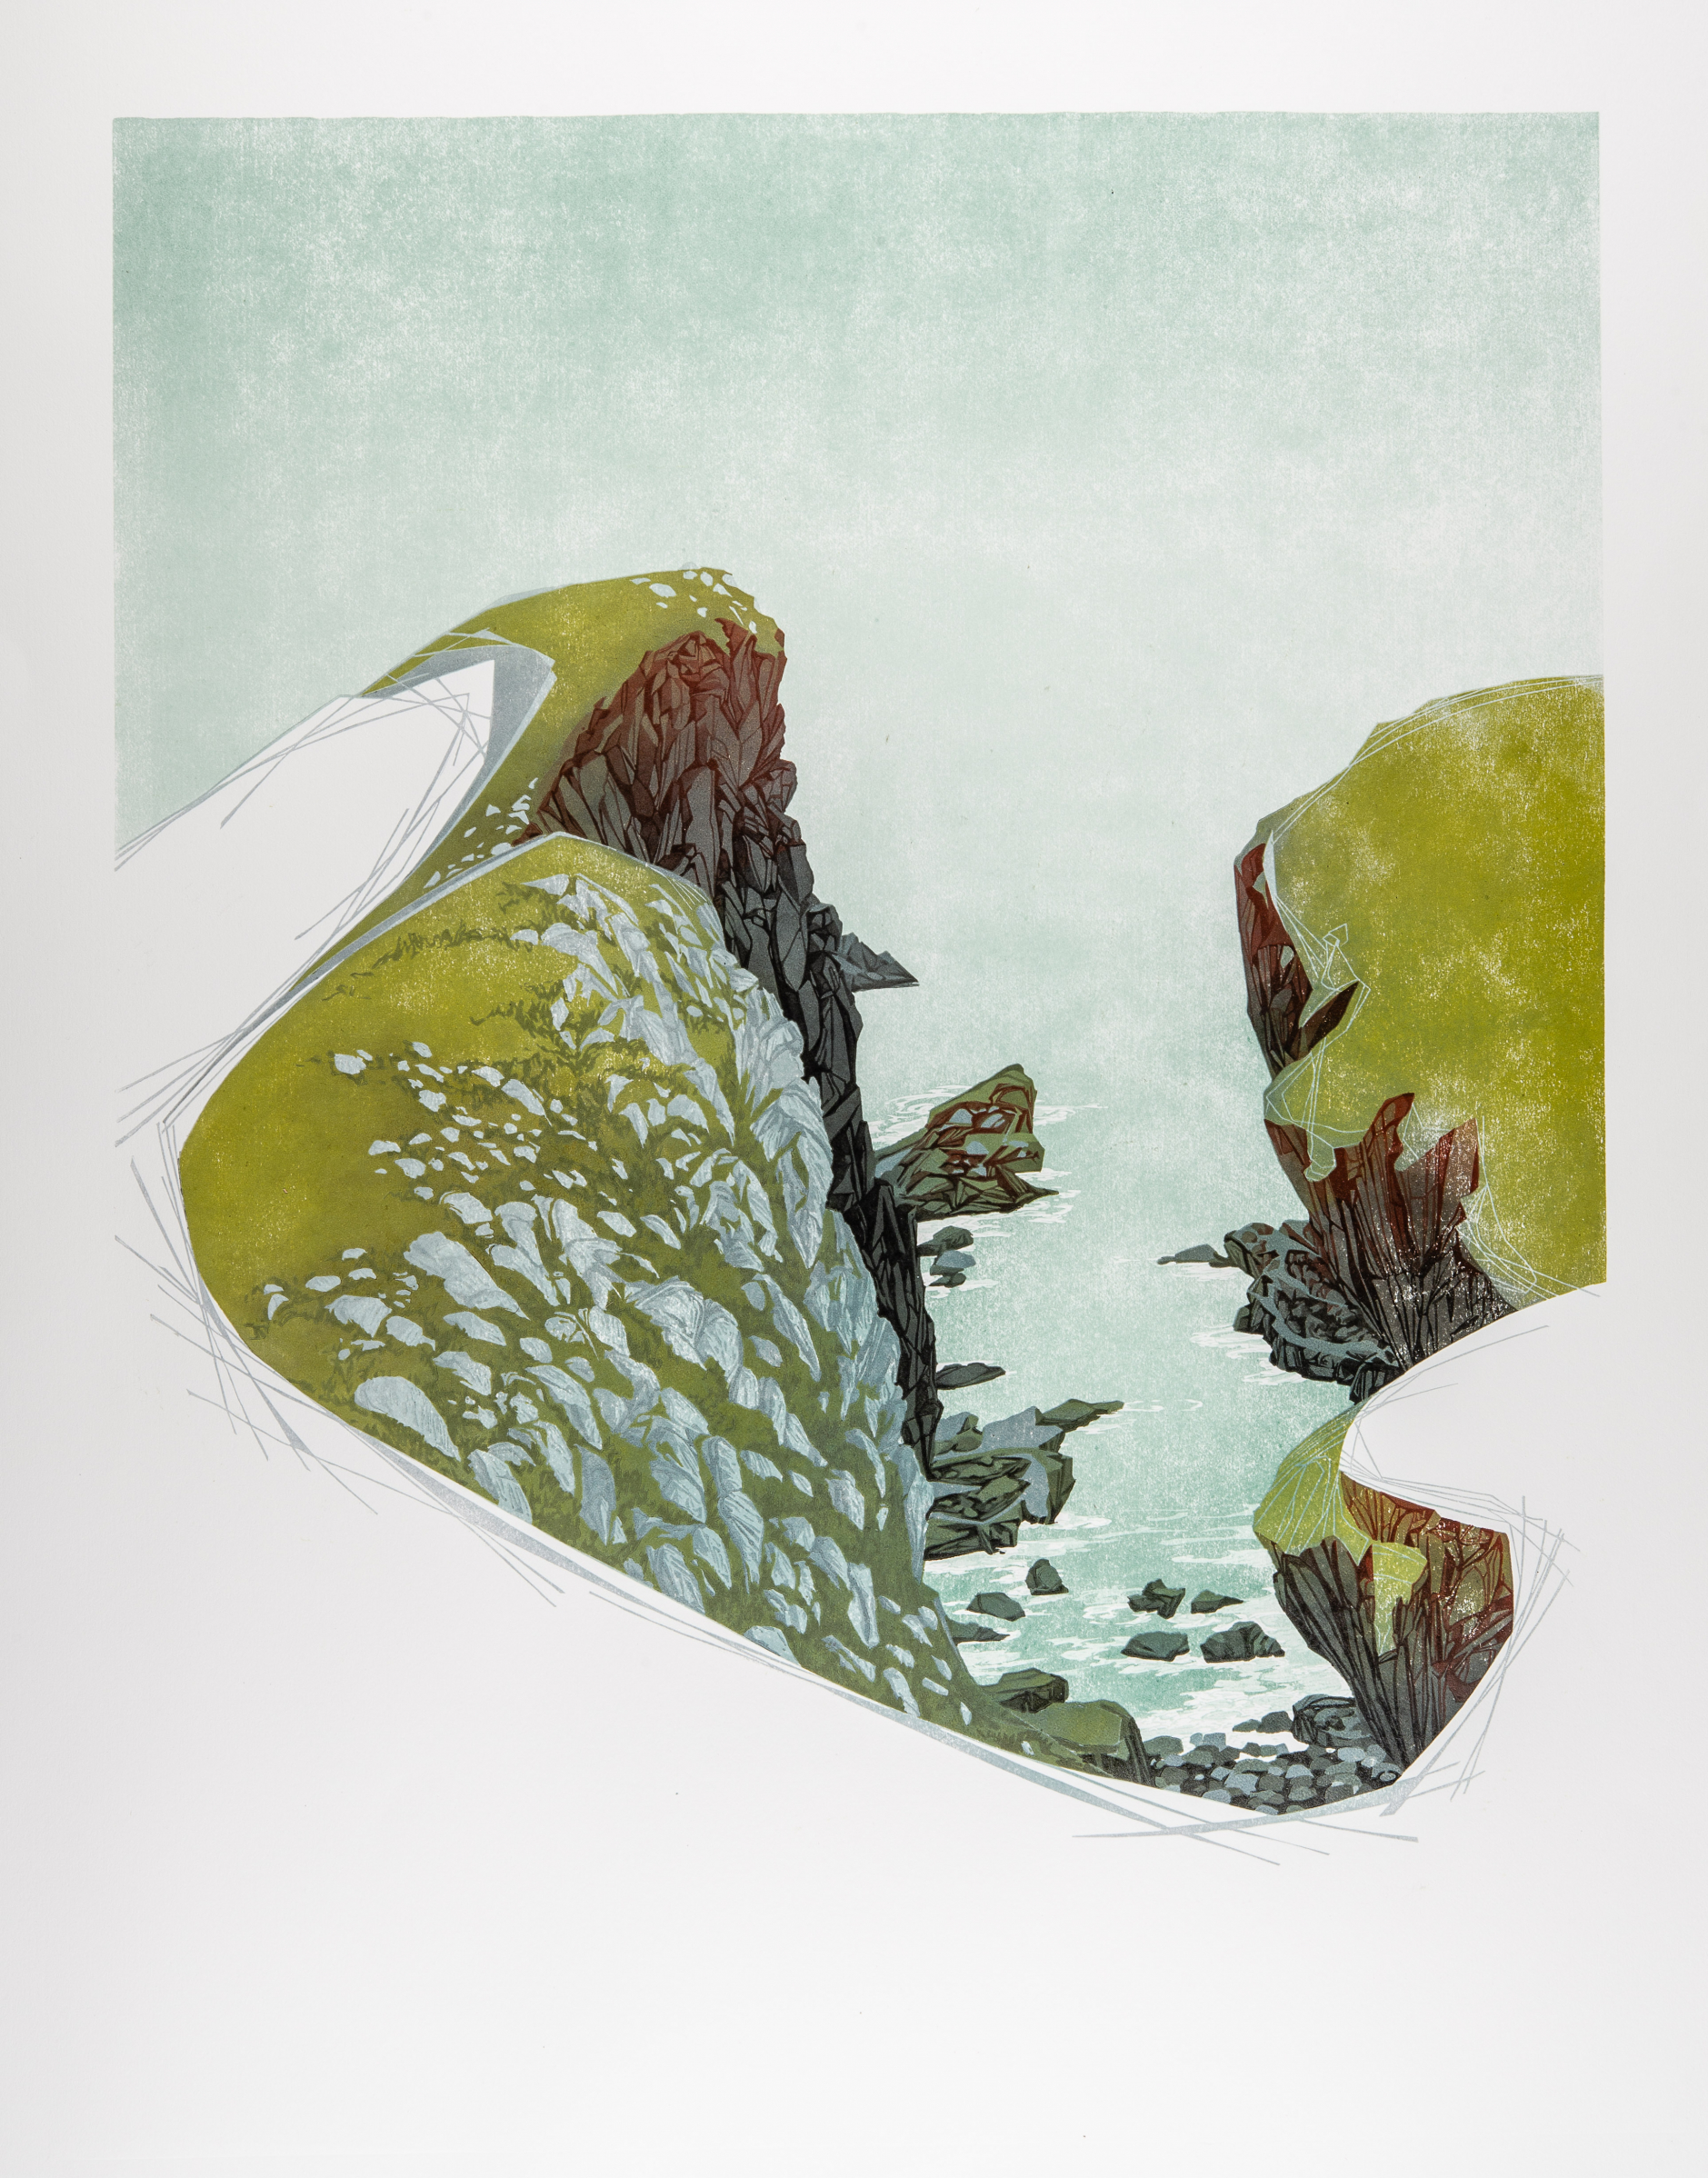 Laura Boswell. Between Cliffs, St Abbs Head (Linocut - 540 x 680 mm)